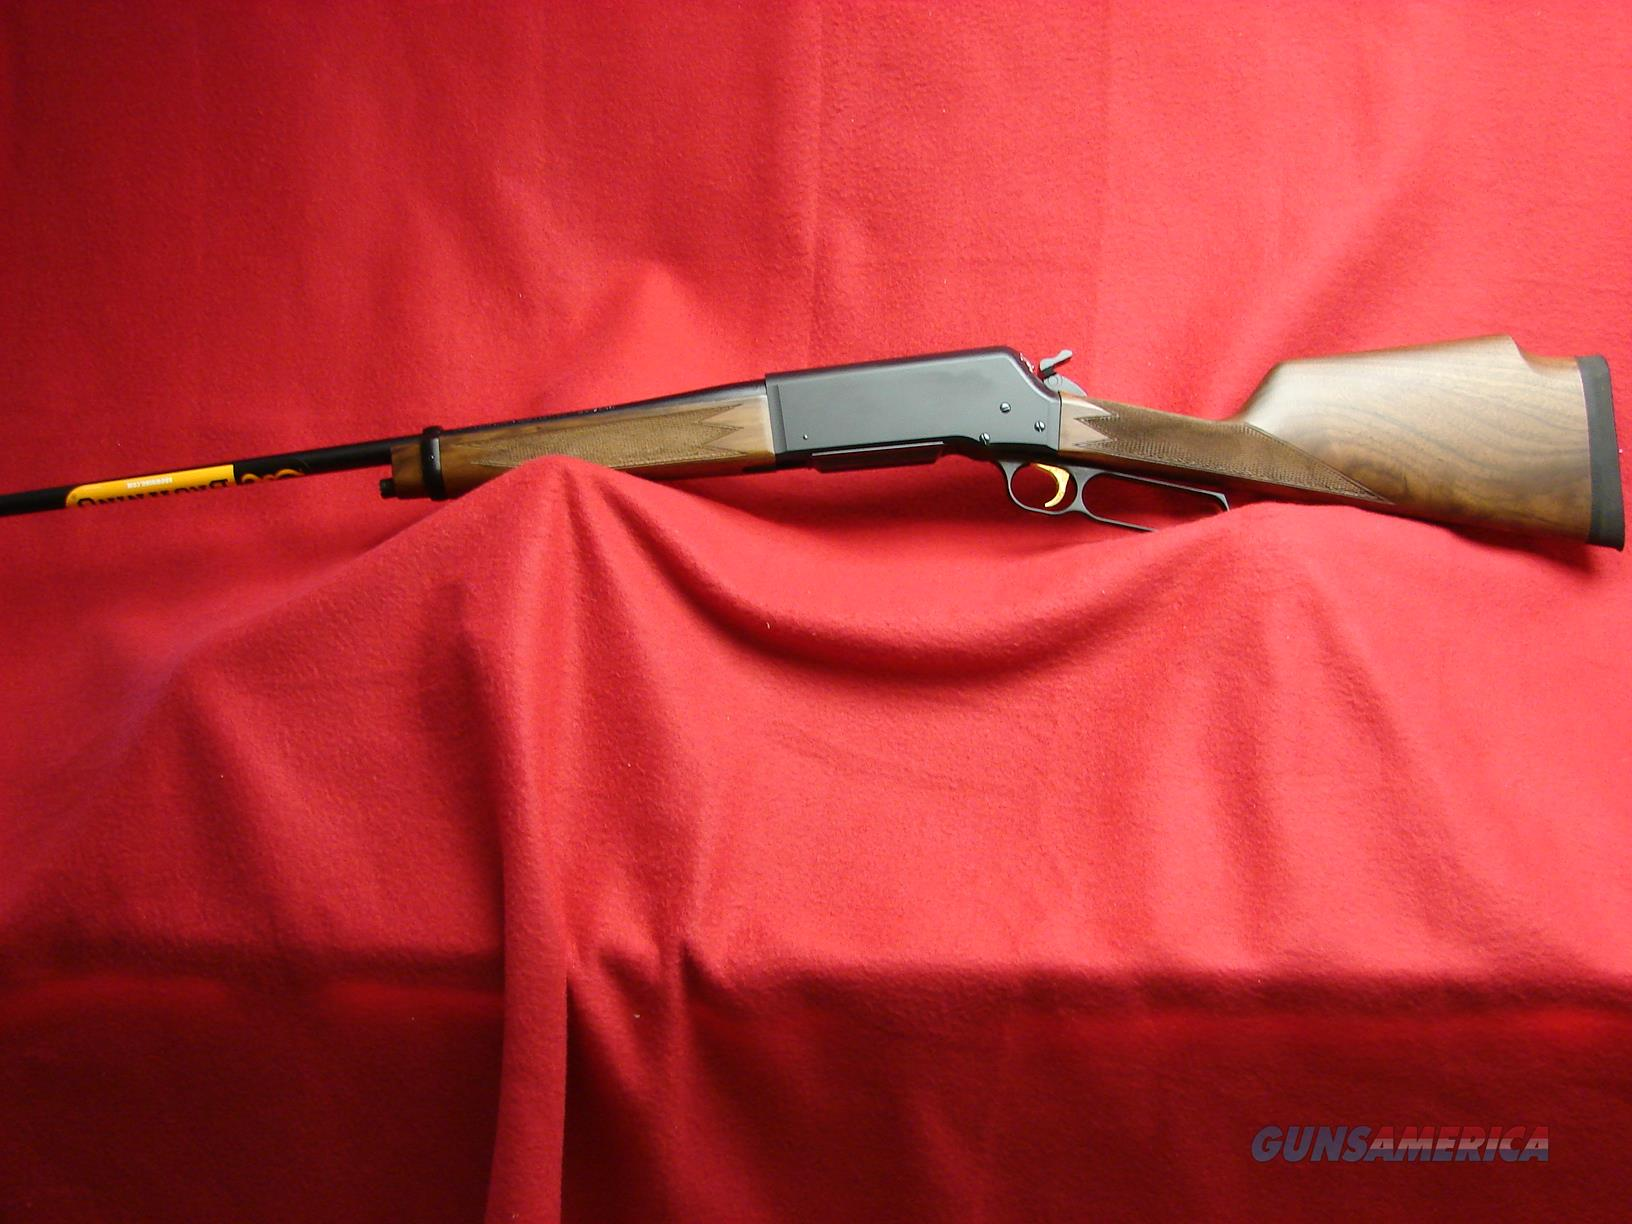 Browning BLR - Model 81 - Monte Carlo Stock - Lt Wt - 308 cal - NIB  Guns > Rifles > Browning Rifles > Lever Action